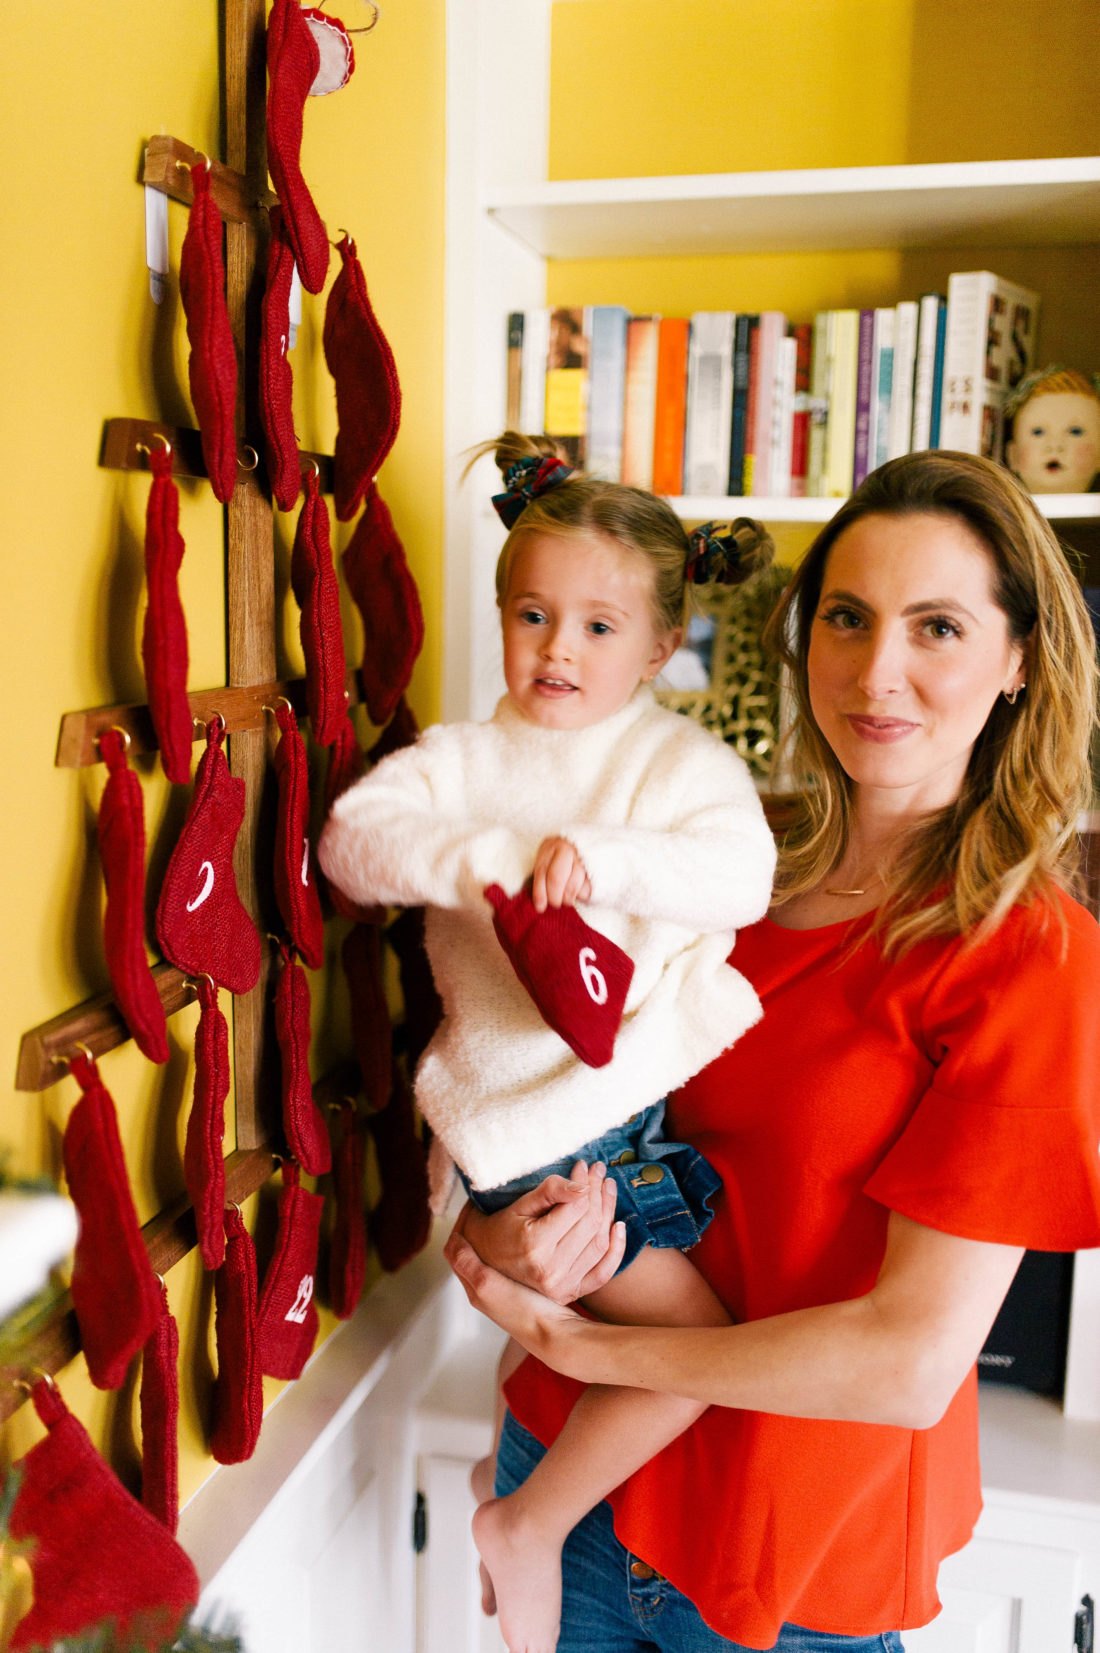 Eva Amurri Martino helps three year old daughter Marlowe unwrap a day of her Advent Calendar